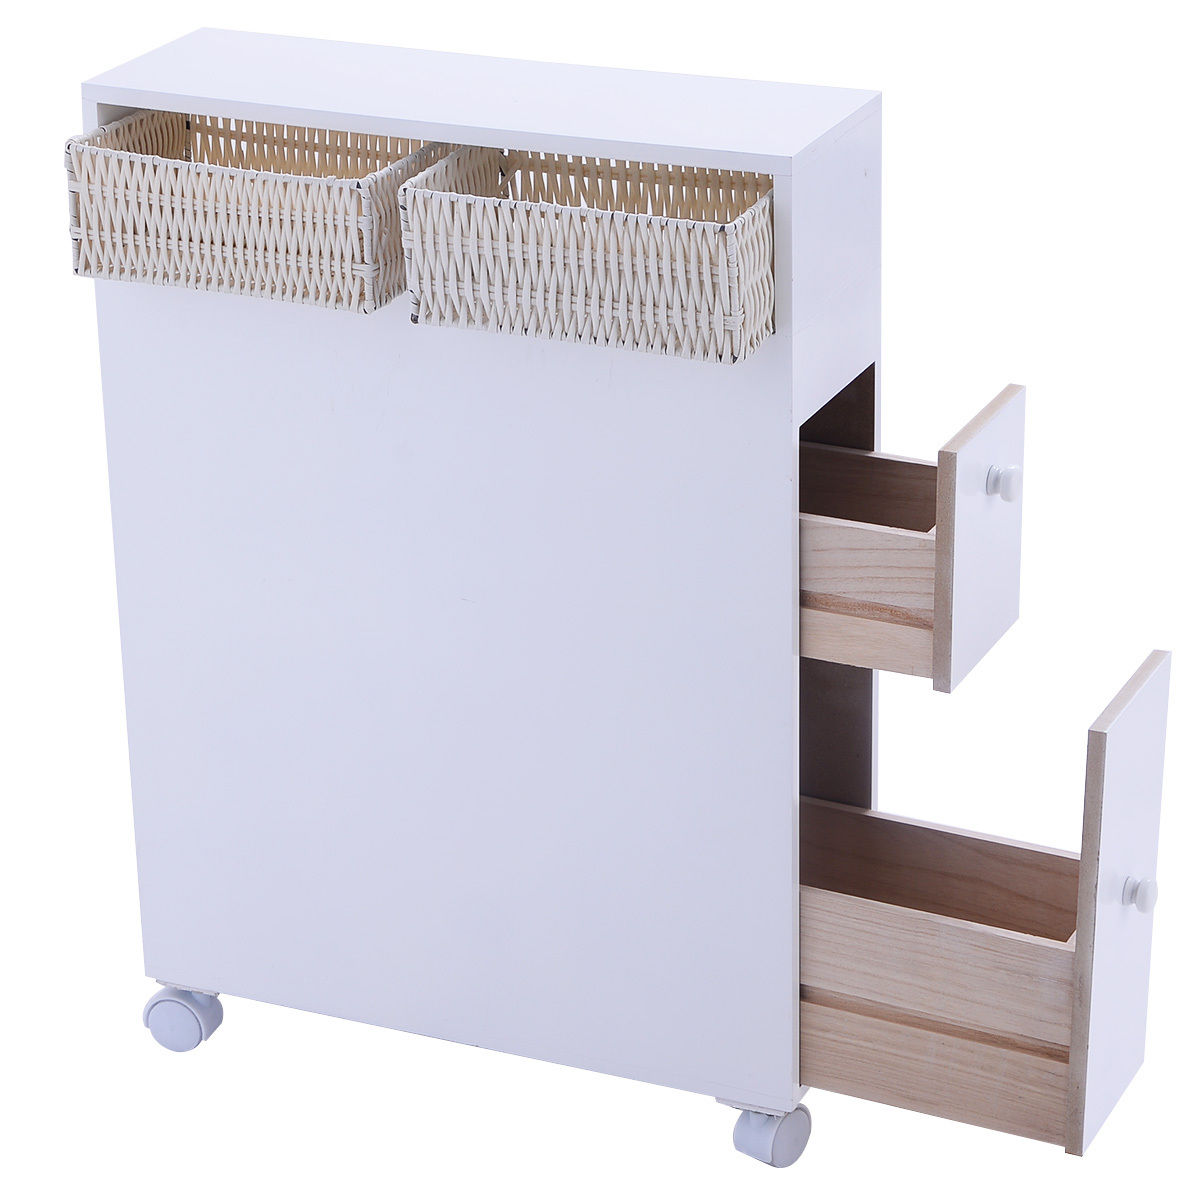 Costway Wood Floor Bathroom Storage Rolling Cabinet Holder Organizer Bath Toilet White